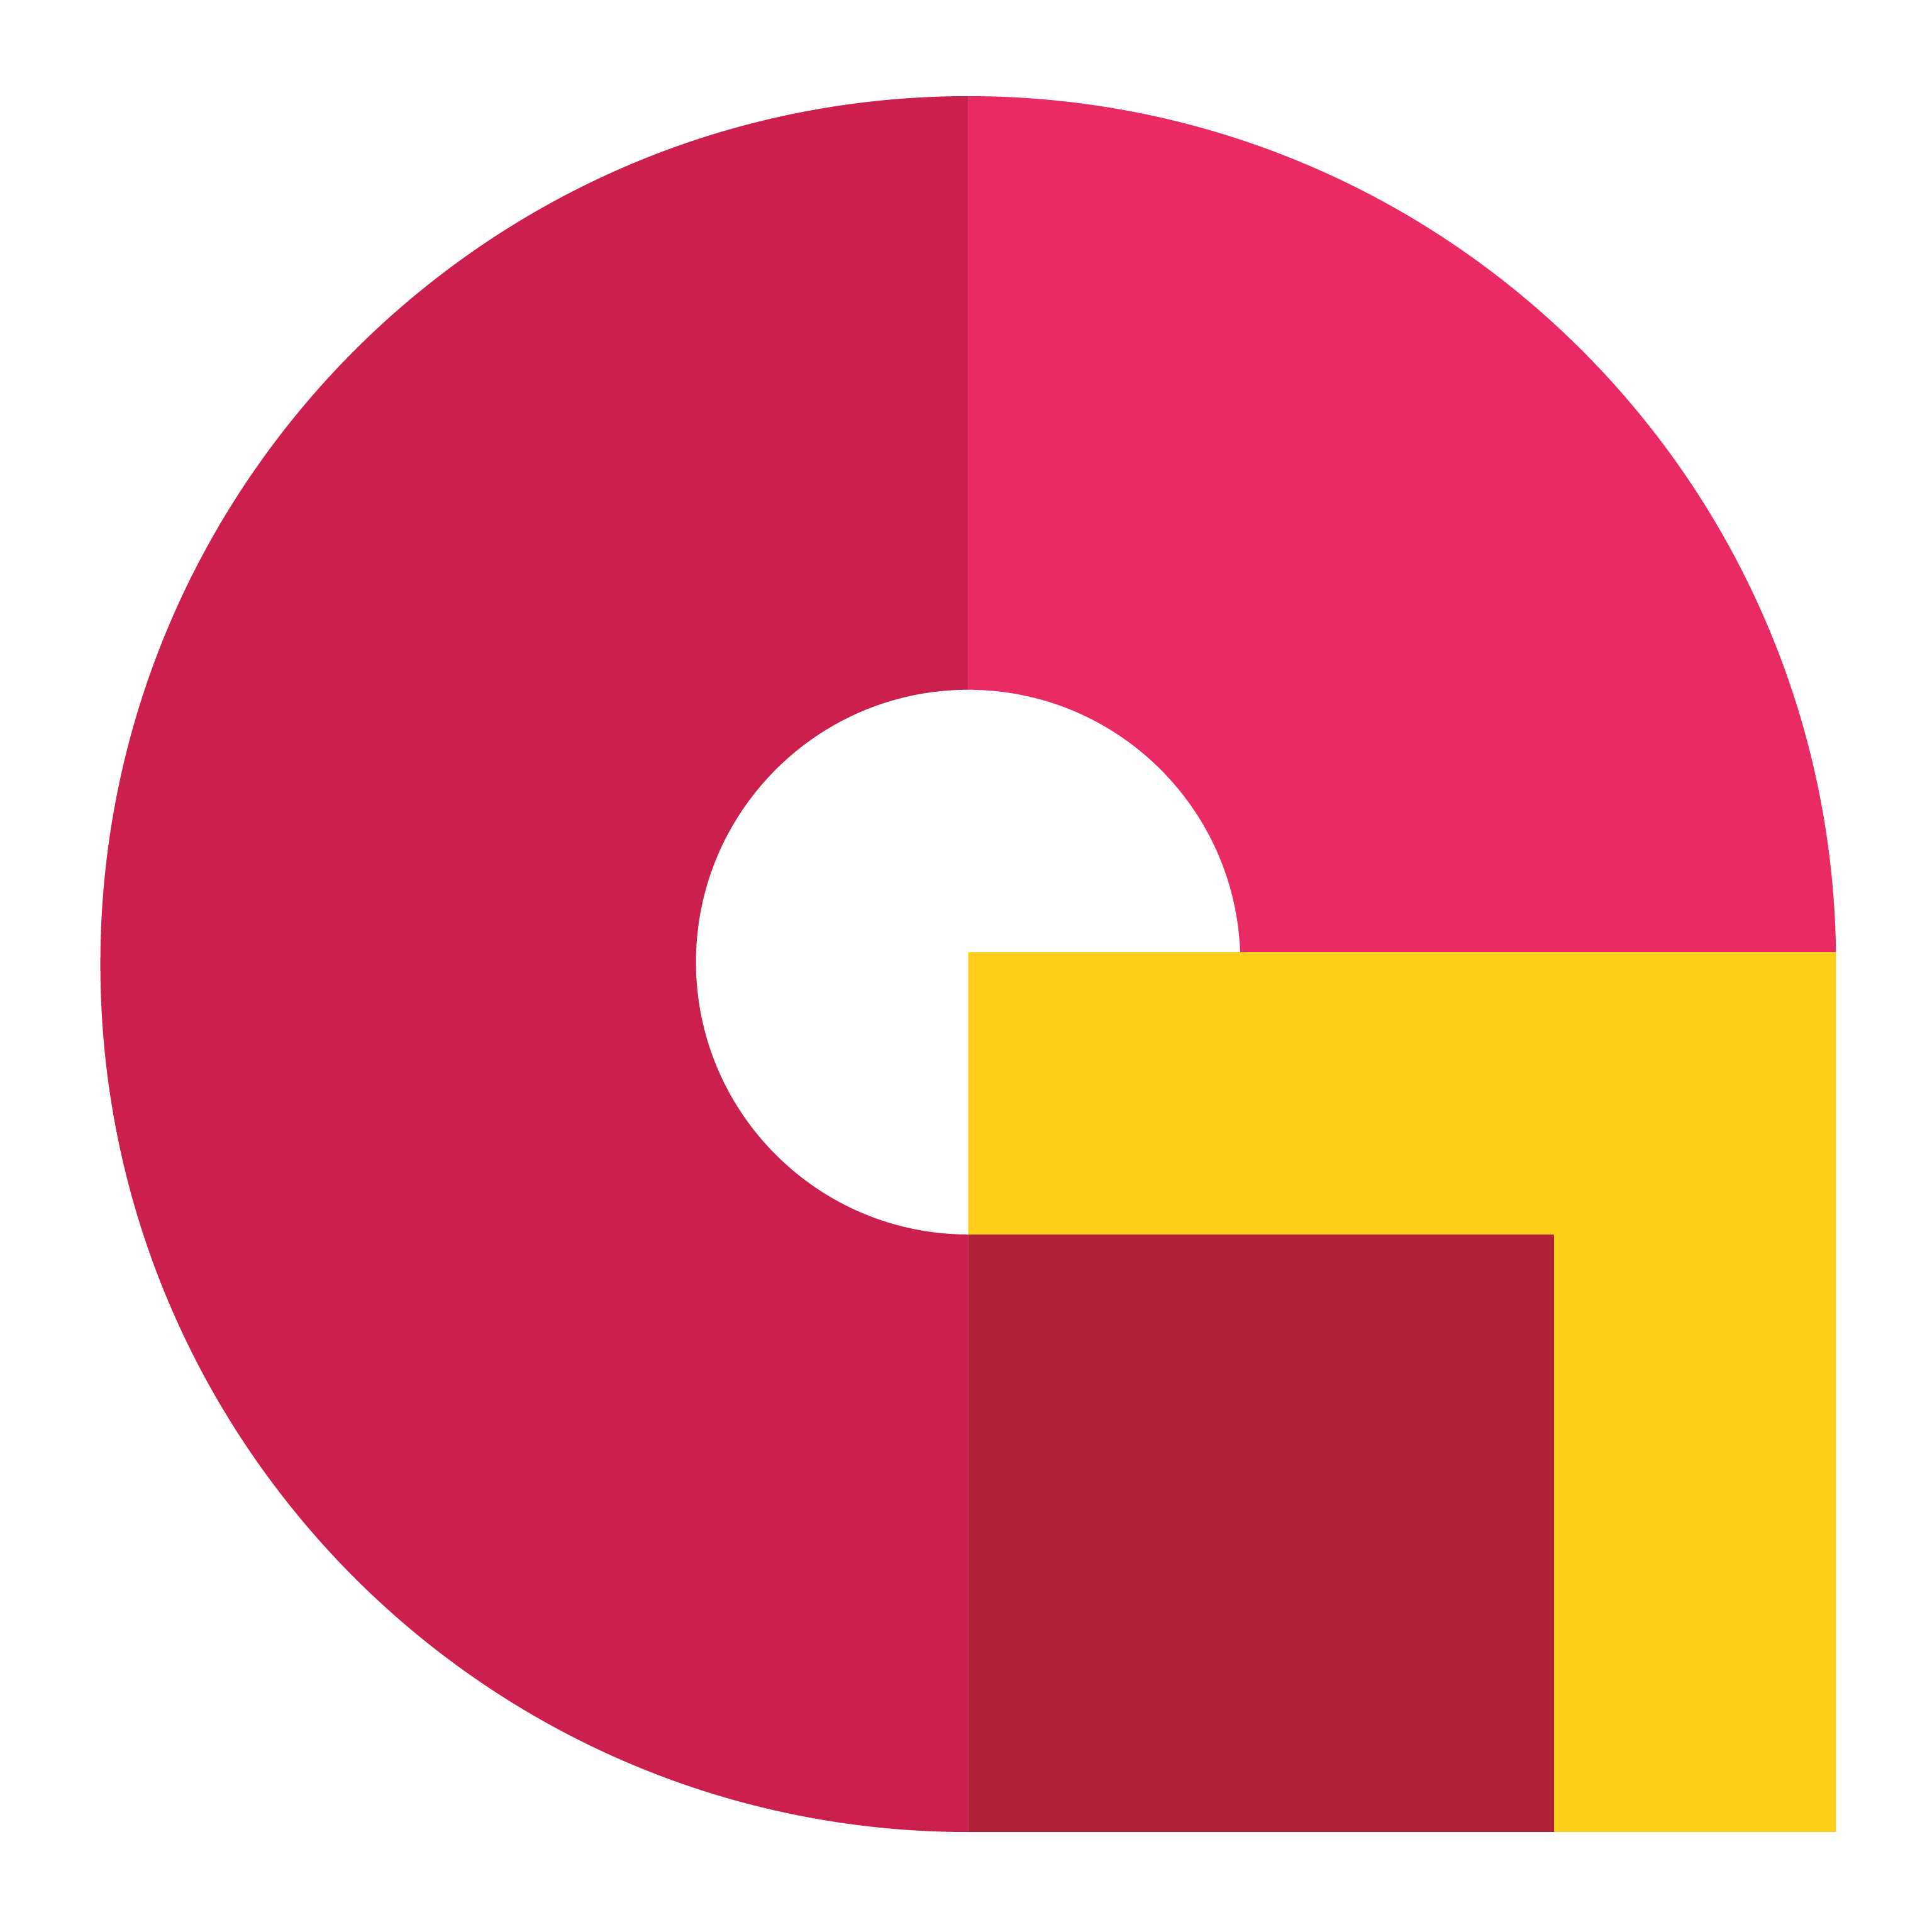 A G in the colours of red, pink, maroon and yellow